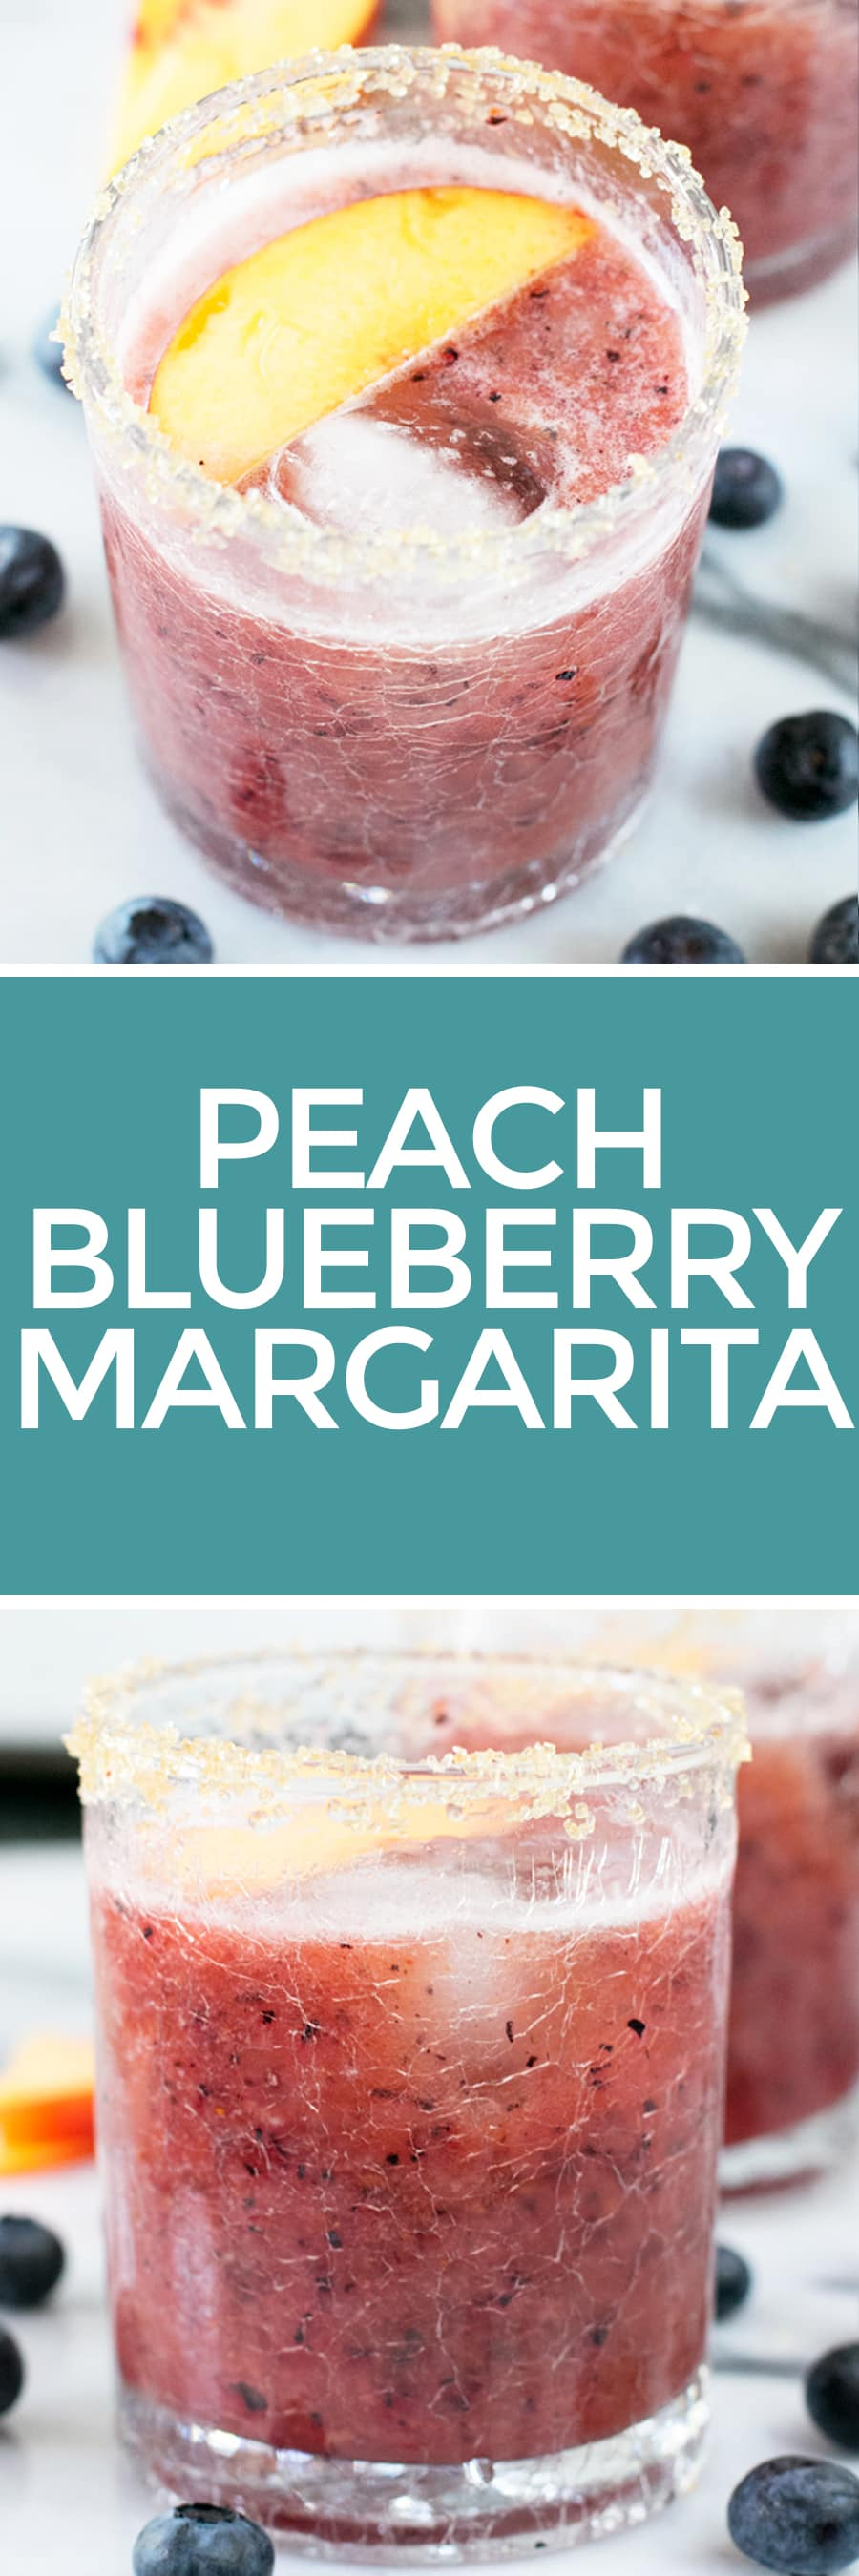 Peach Blueberry Margarita Recipe | cakenknife.com